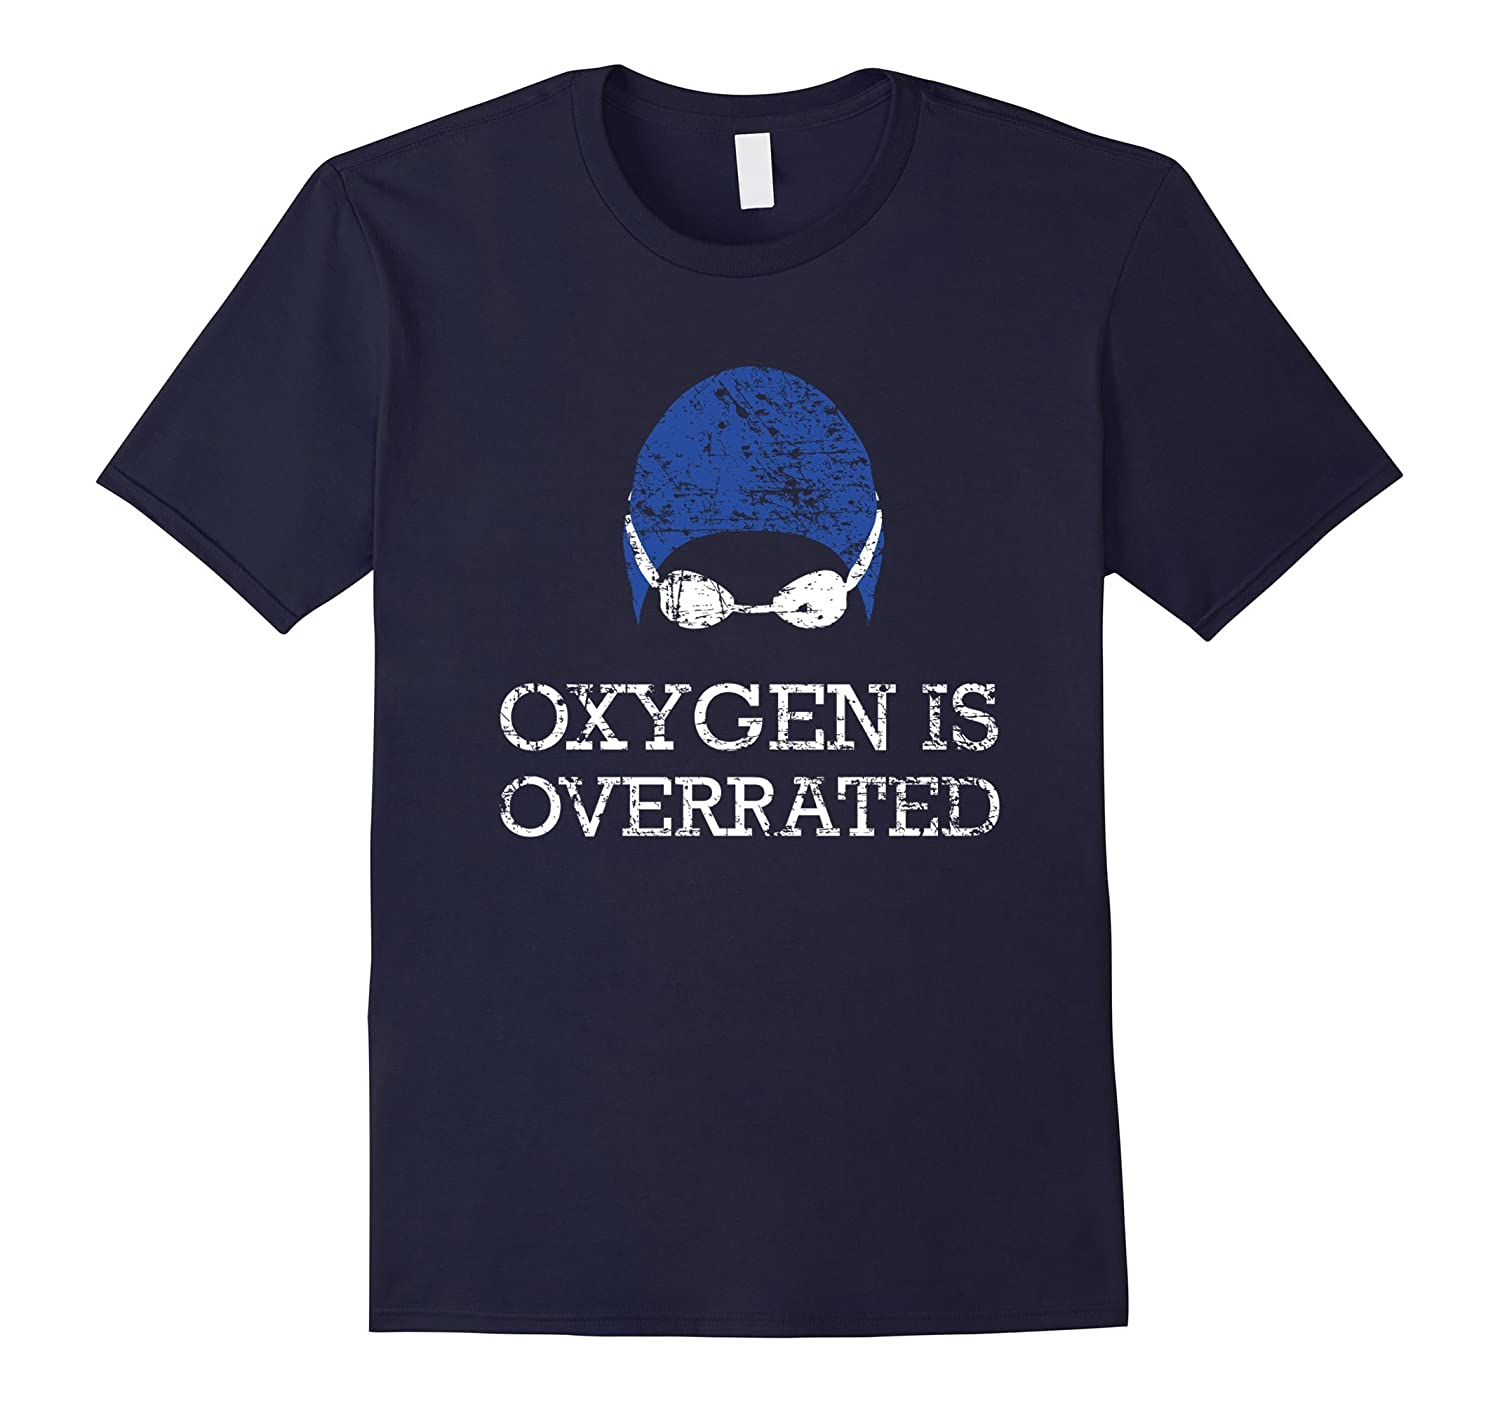 Oxygen is Overrated T-Shirt, Funny Swimming Swim Team Gift-BN